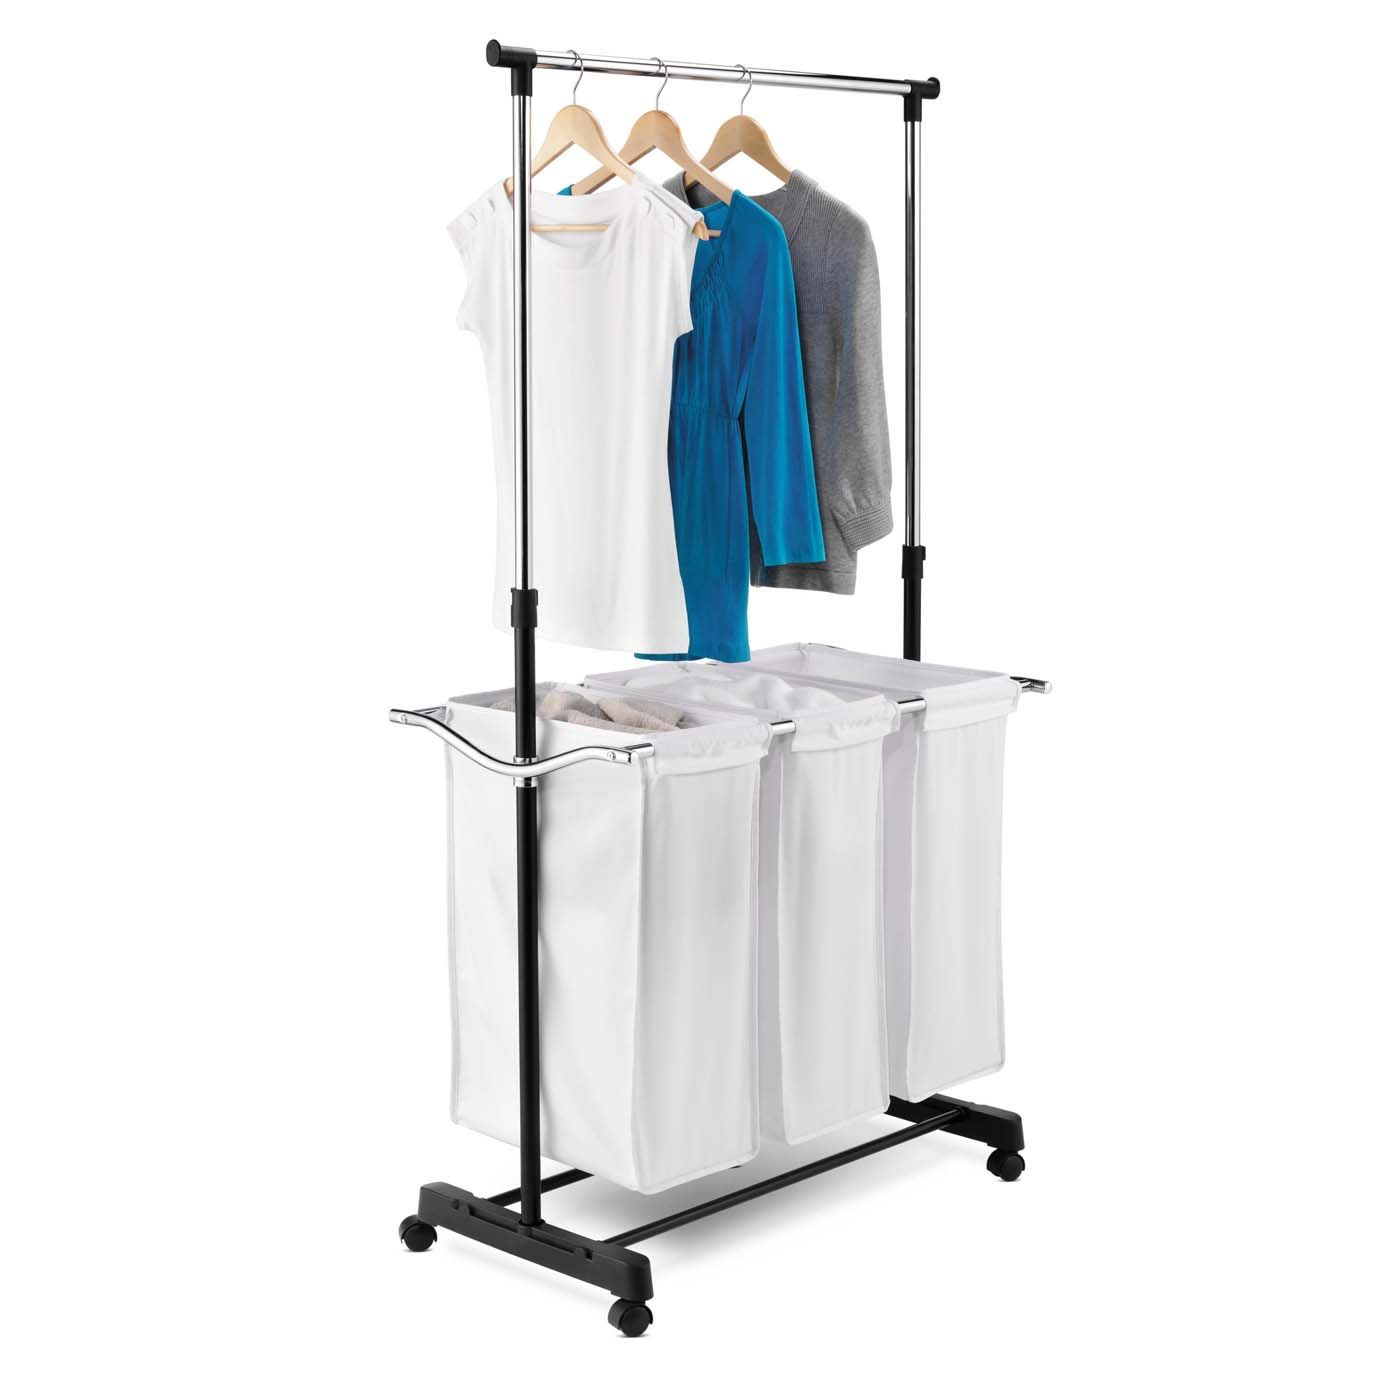 The Triple Sorter Laundry Center With Hanging Bar Is A Must Have